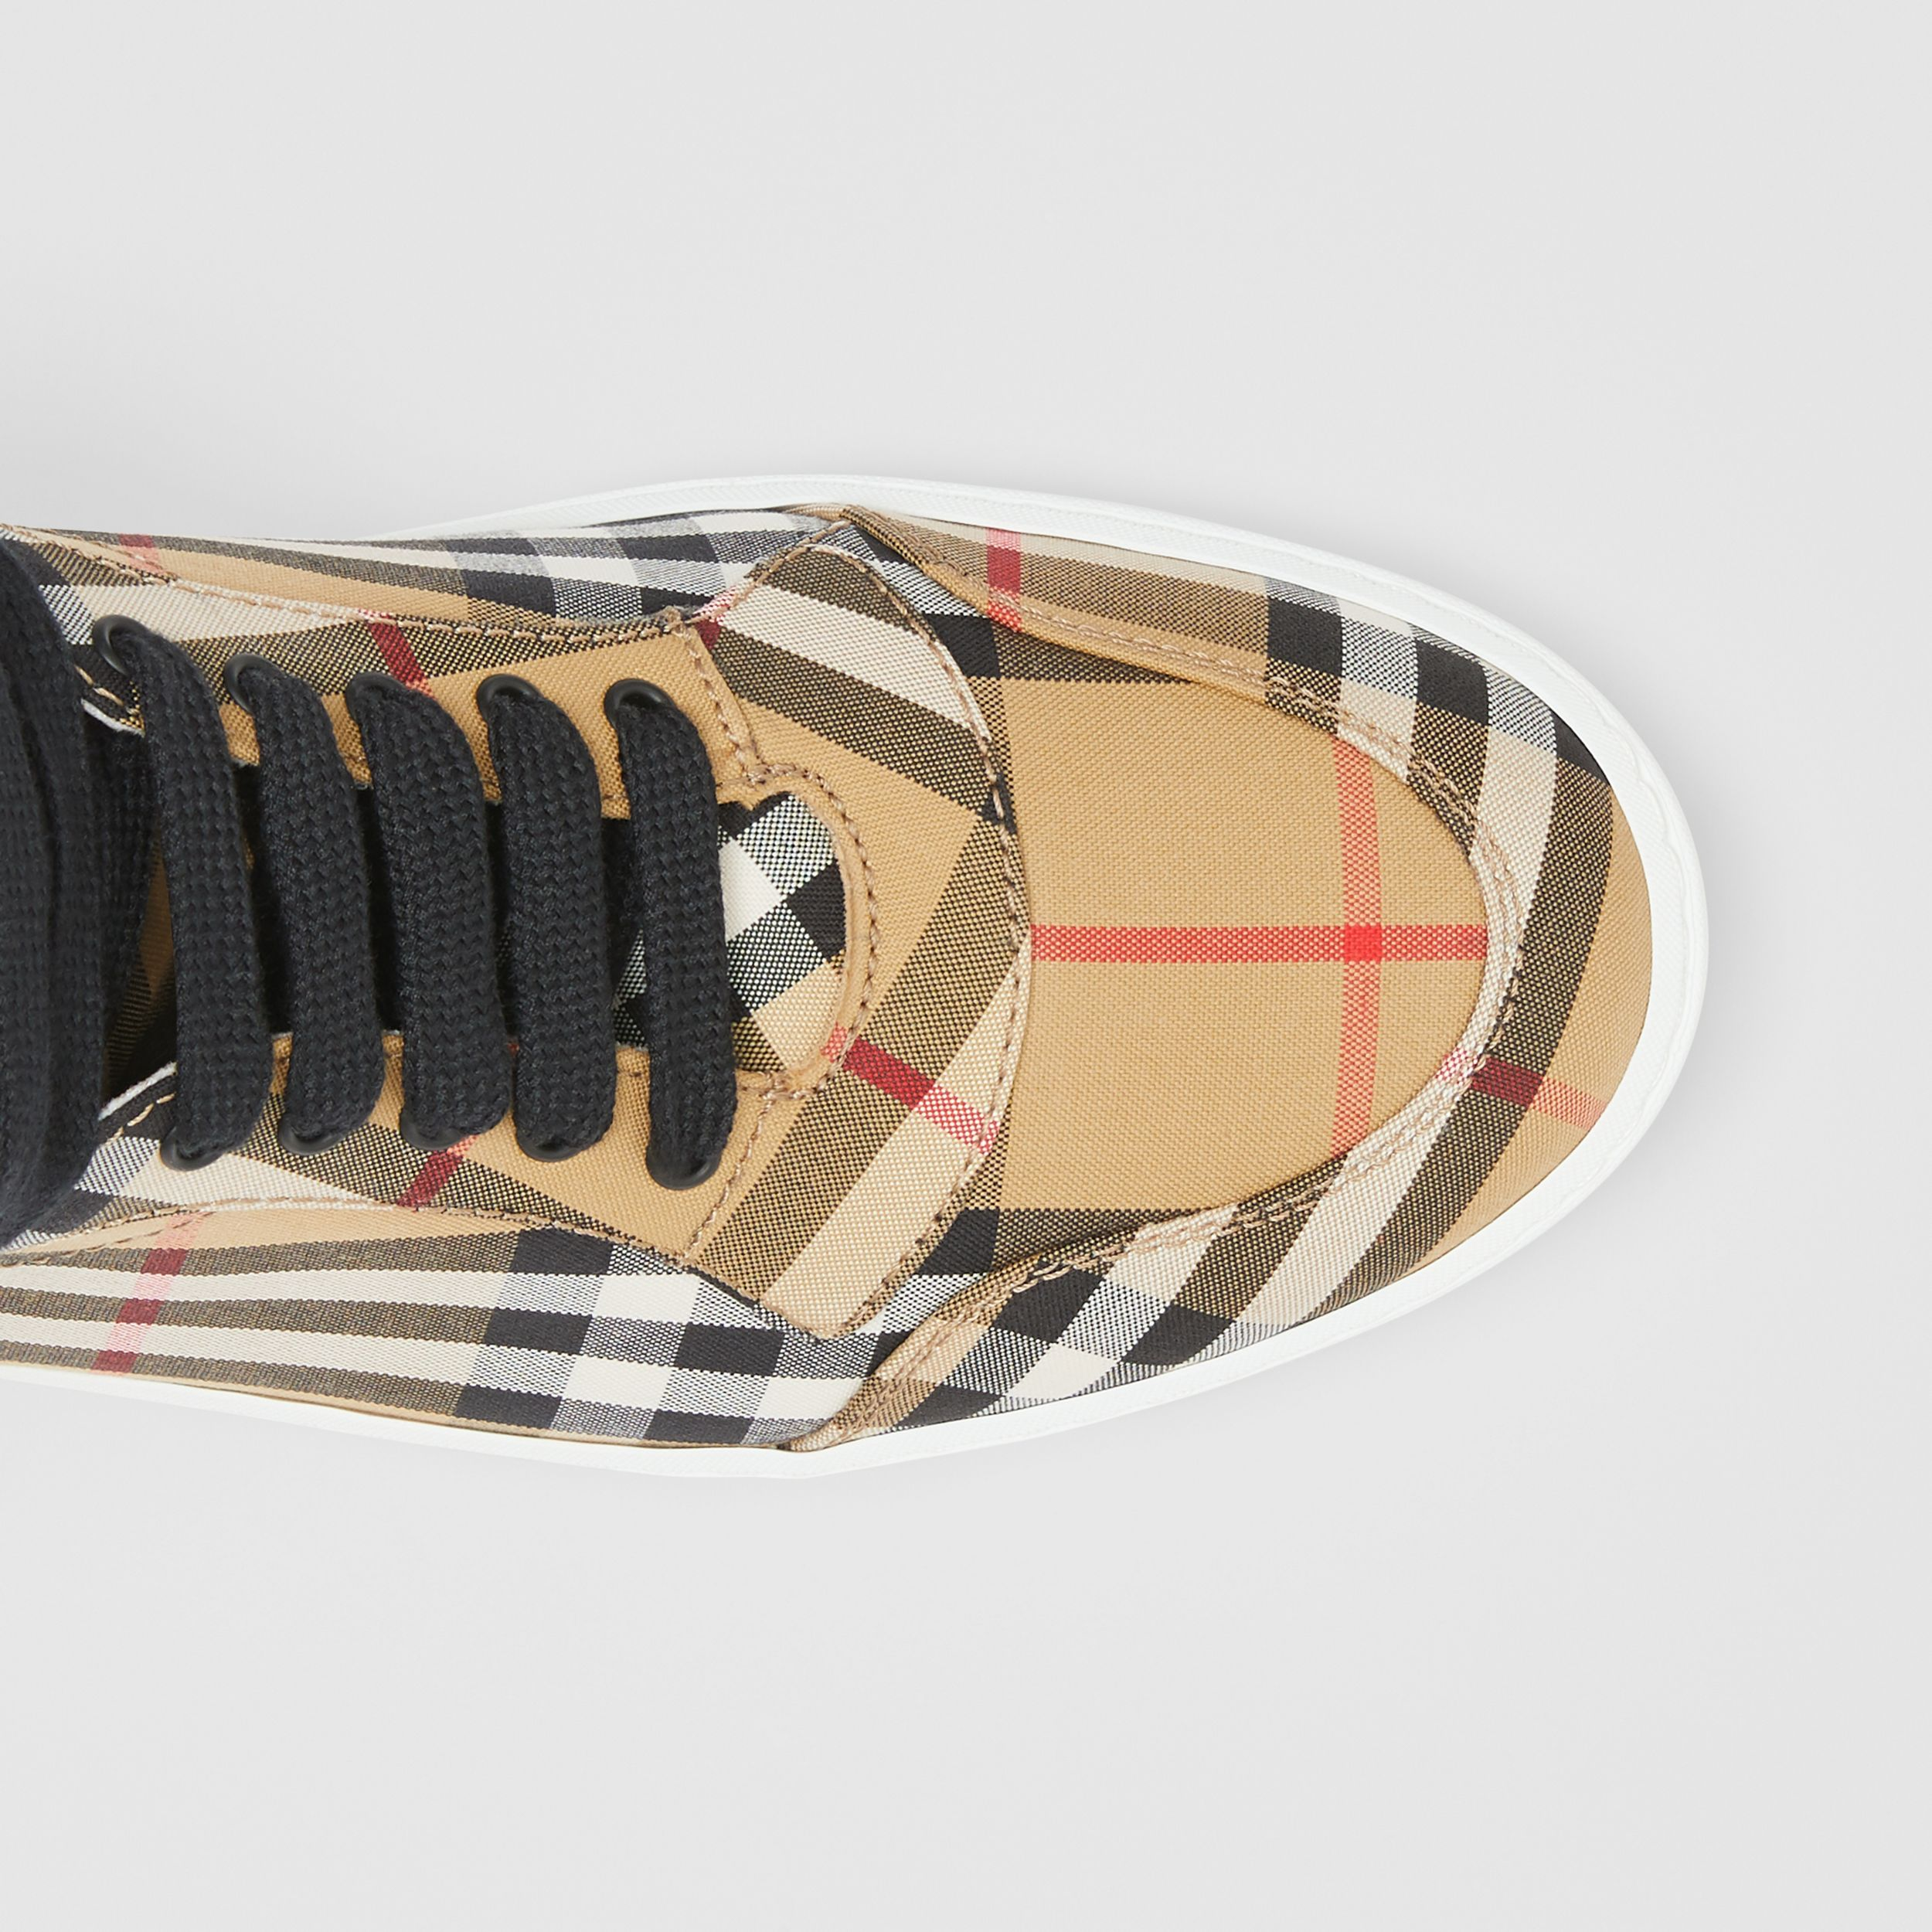 Vintage Check Cotton High-top Sneakers in Antique Yellow - Women | Burberry United Kingdom - 2